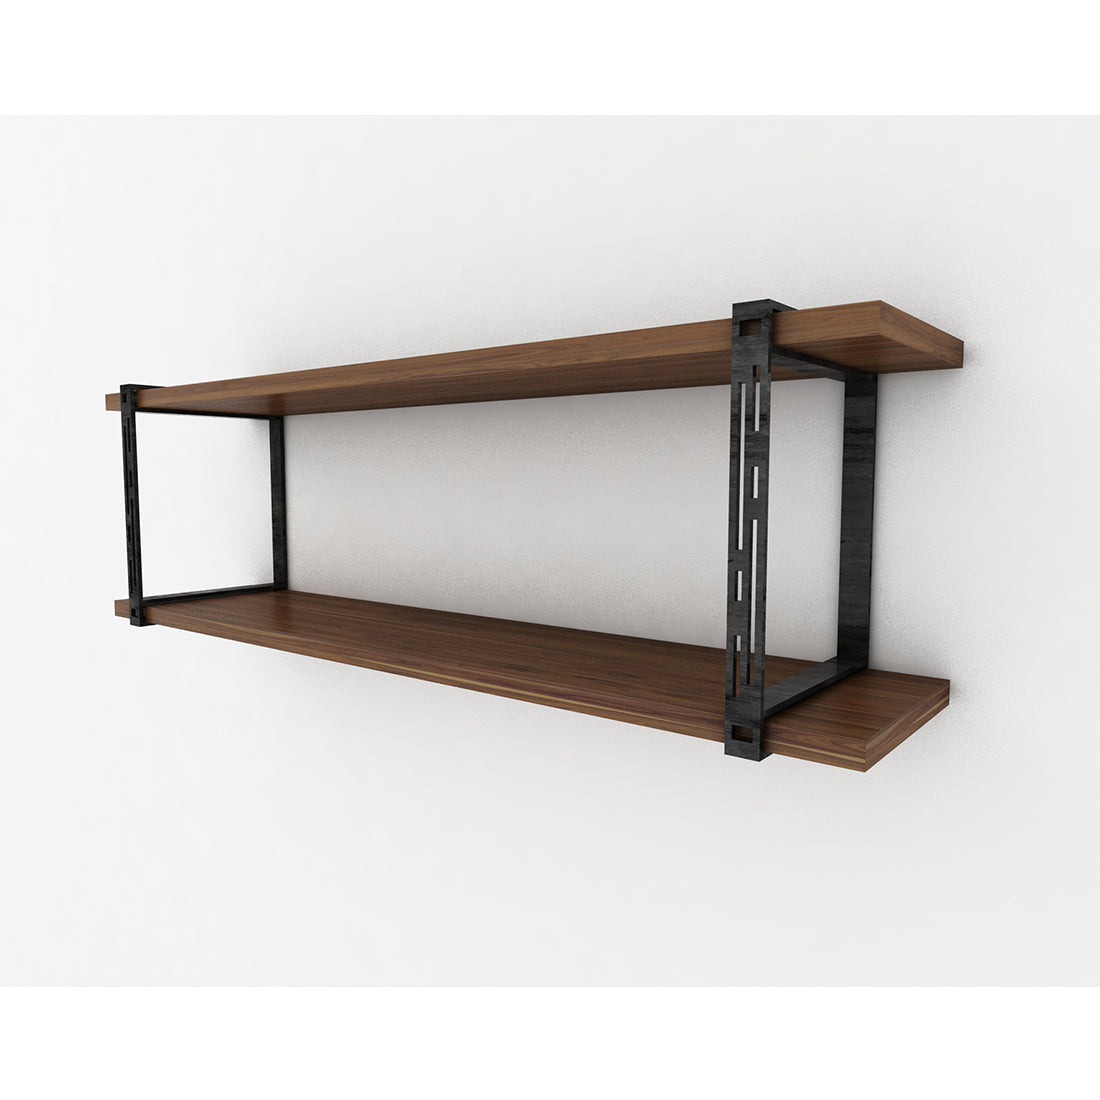 Evans Shelving System - Package B